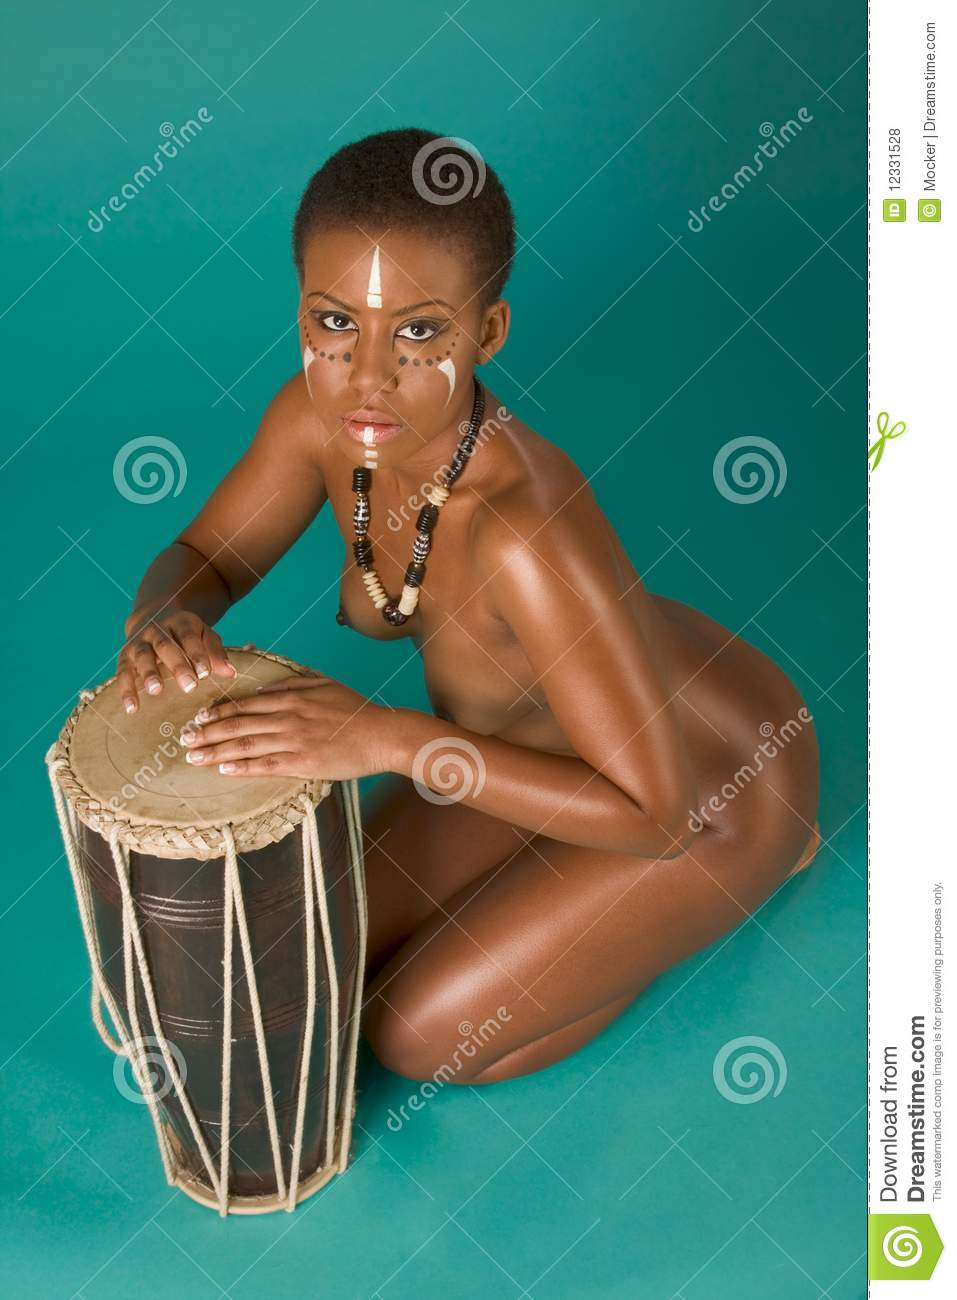 Are not Old naked african american lady interesting. Tell